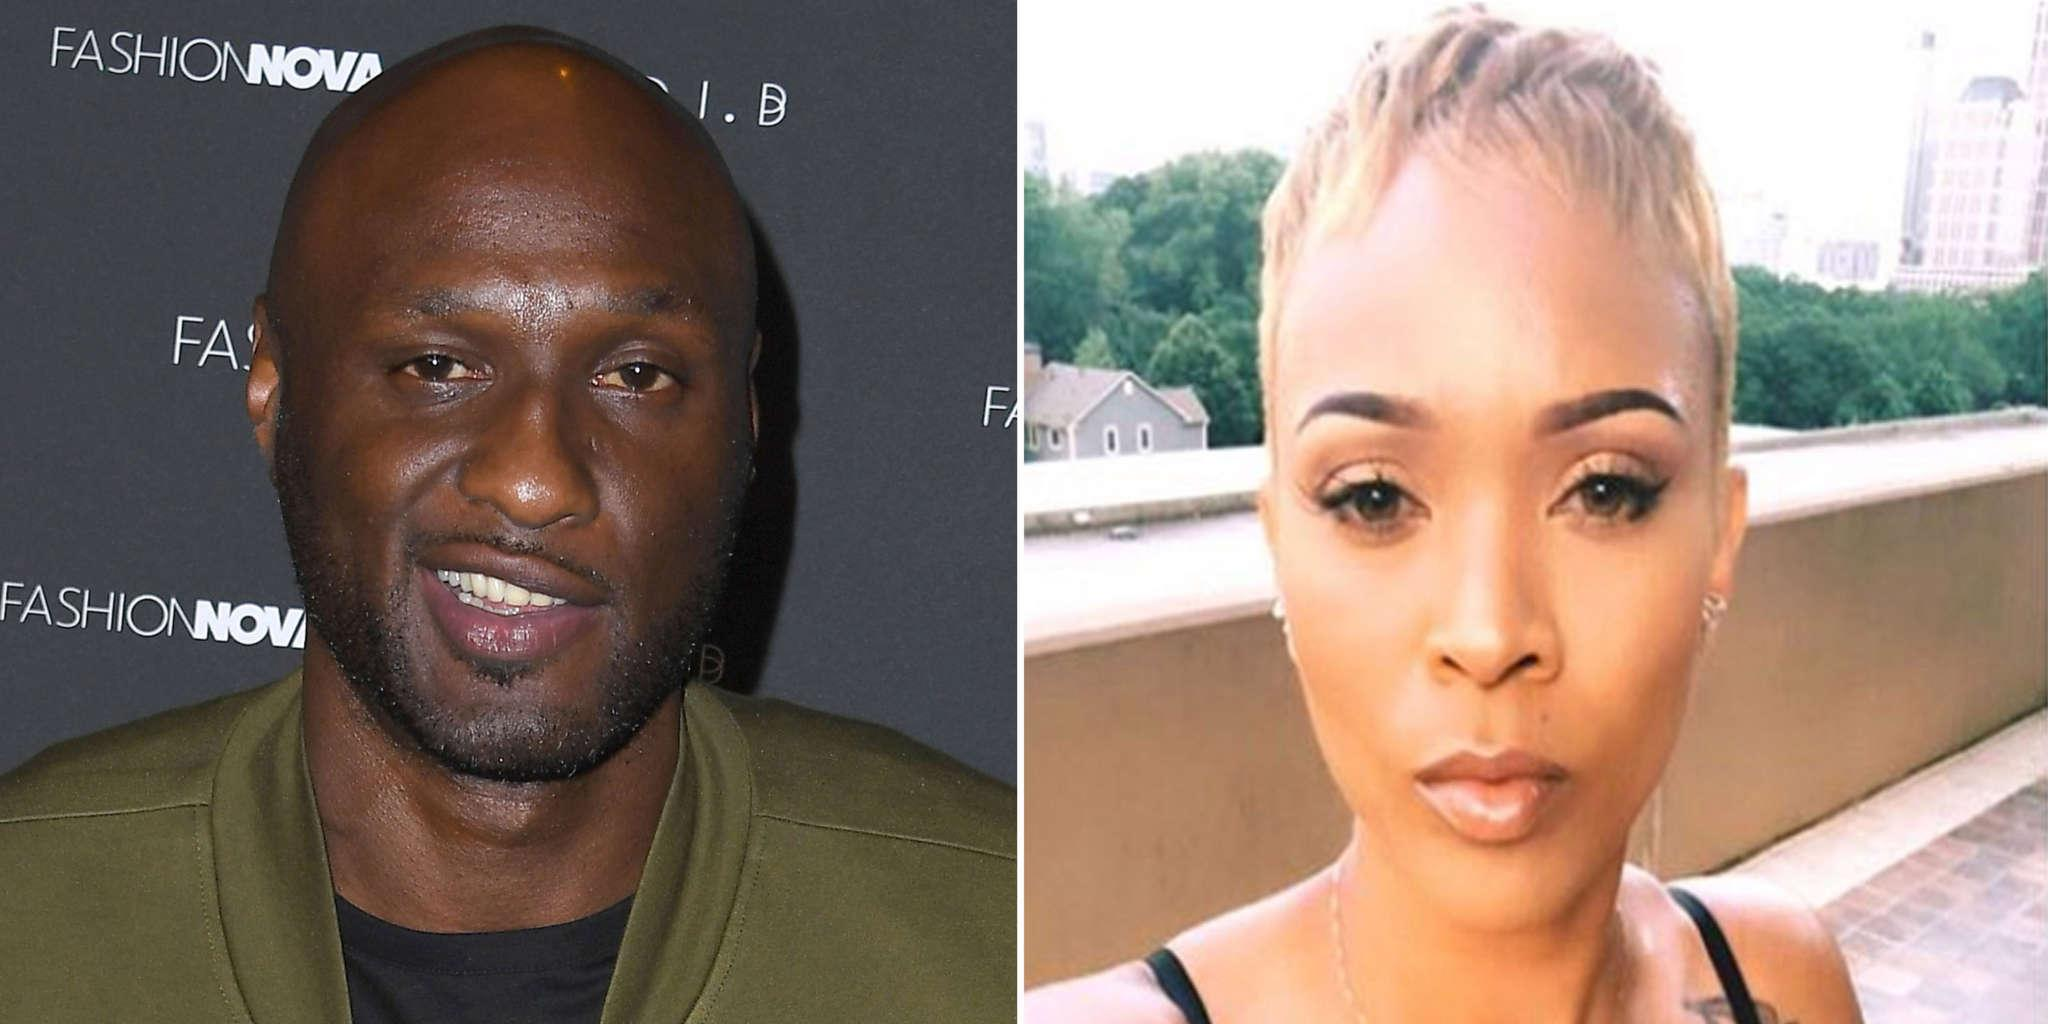 Lamar Odom Wears His Love For Sabrina Parr On His Skin -- Gets Mixed Reviews